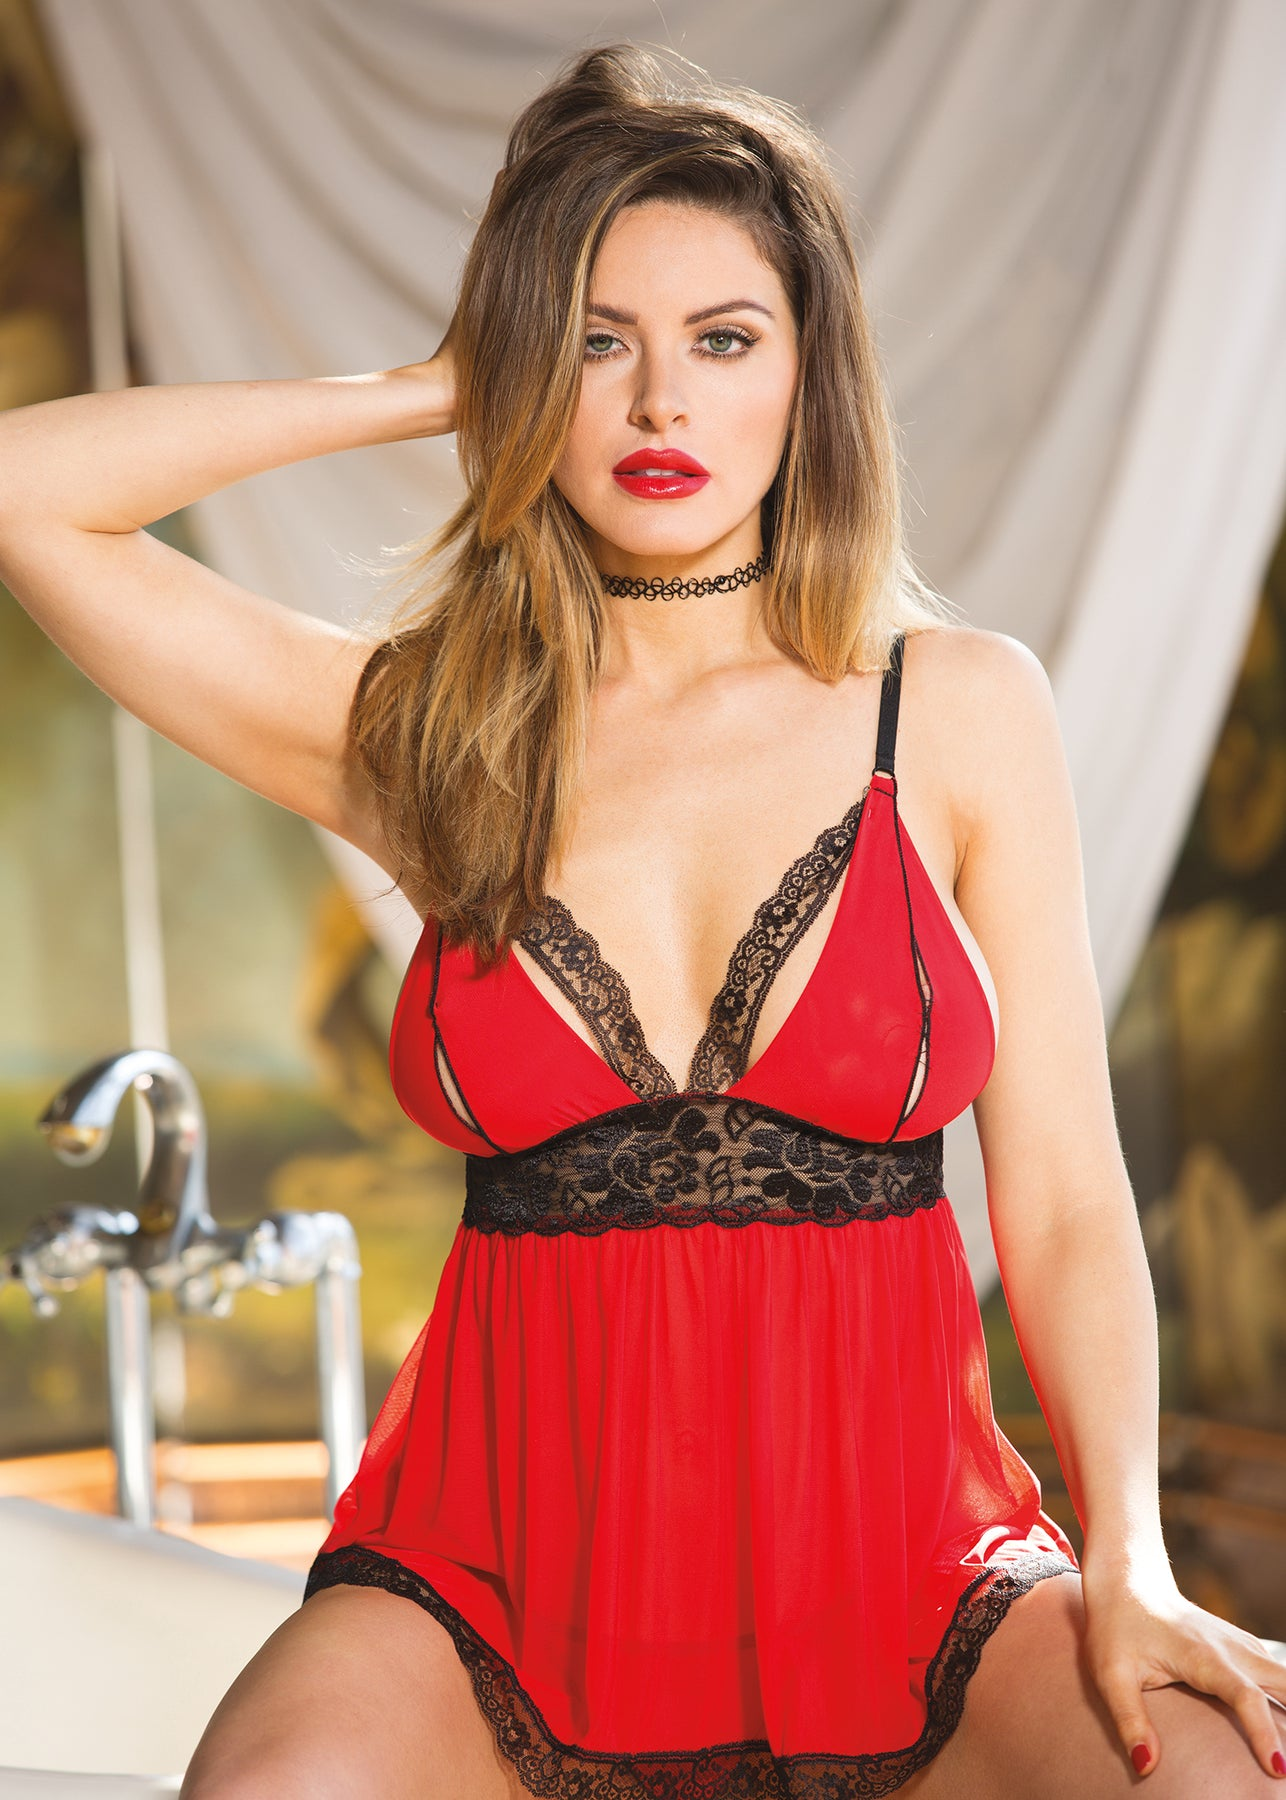 Stretch Knit & Stretch Lace Split Cup Baby Doll - One Size - Red & Black HOT-96623RB